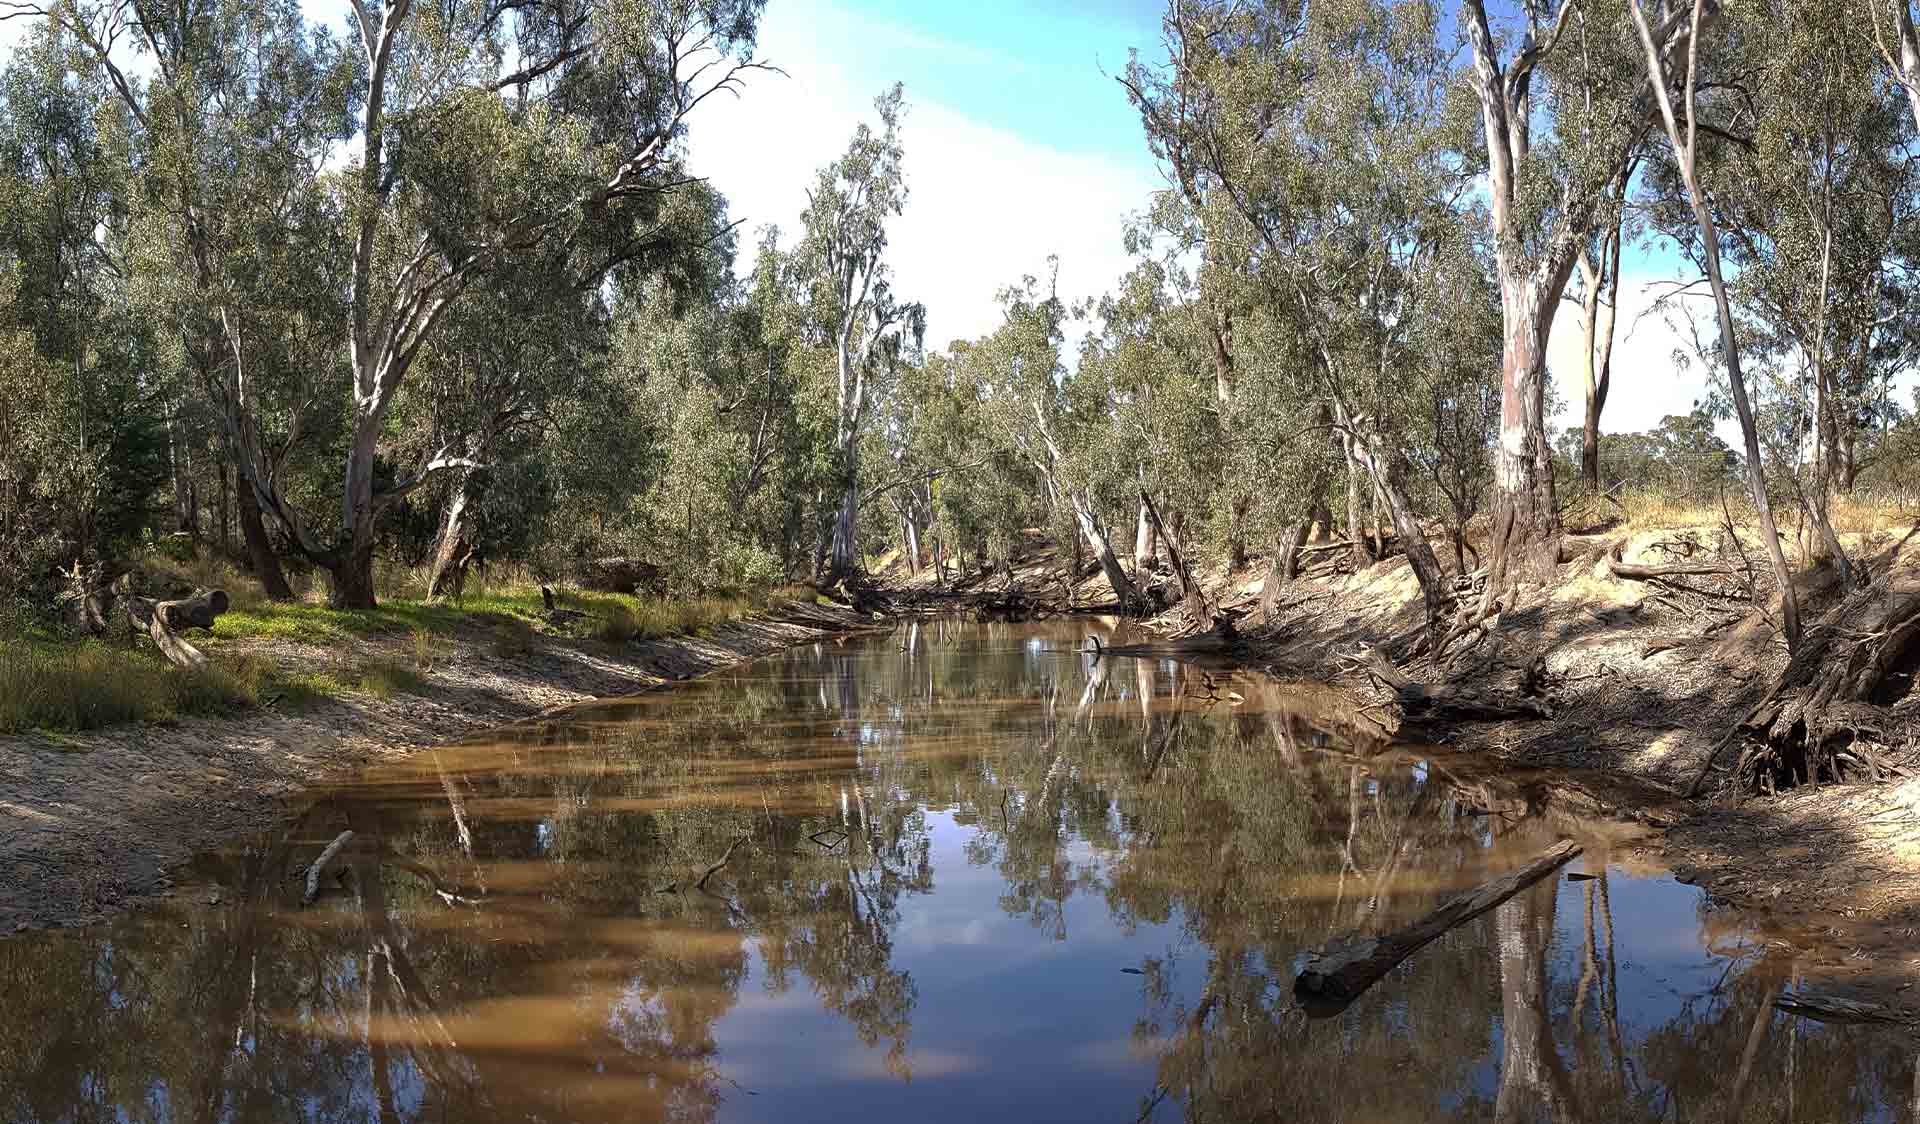 The reflection of the sky in the Ovens River wetlands in the Warby-Ovens National Park